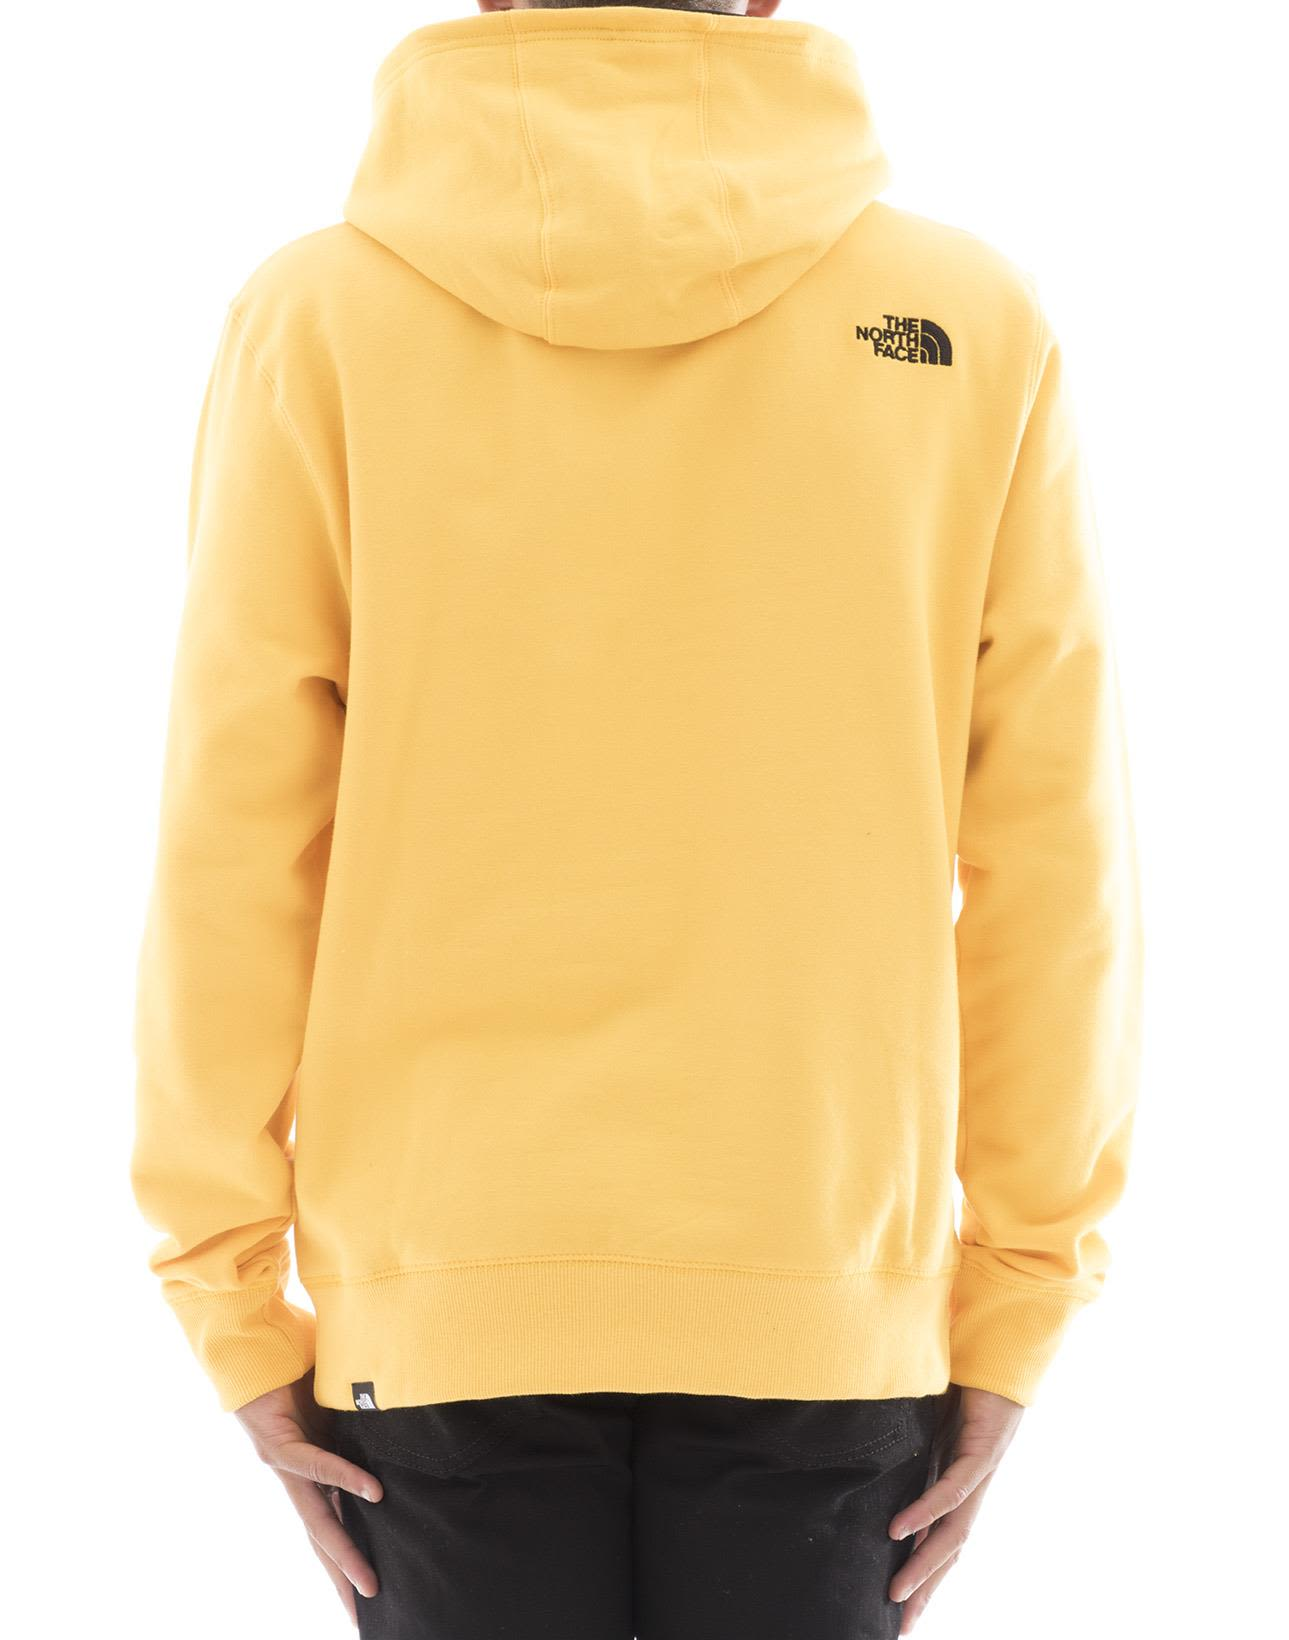 The North Face - Yellow Cotton Sweater - Yellow, Men's Sweaters ...